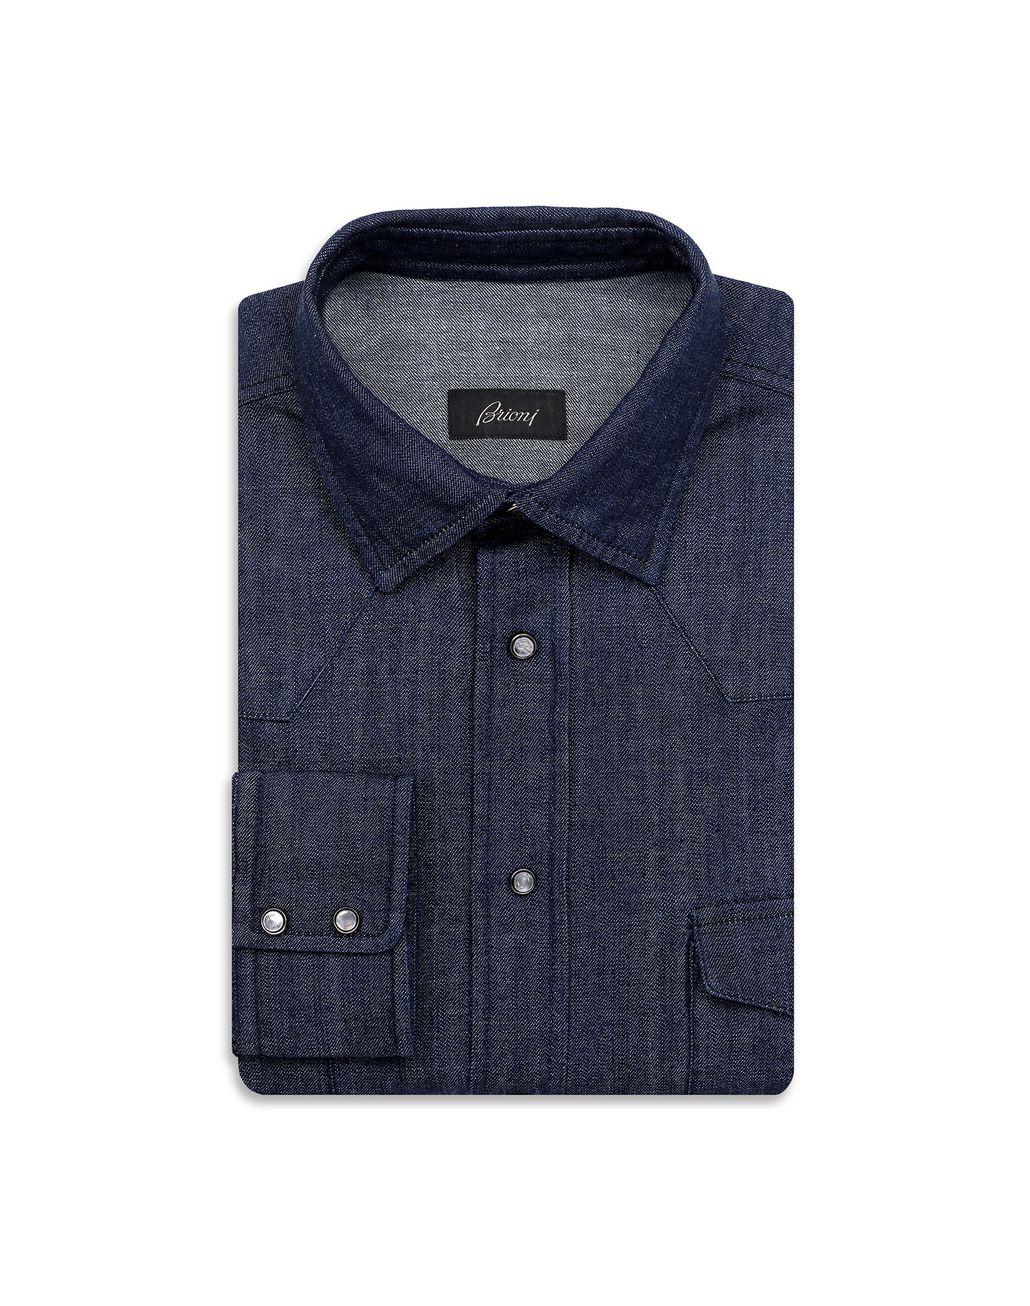 BRIONI Navy Blue Denim Shirt Shirt Man f